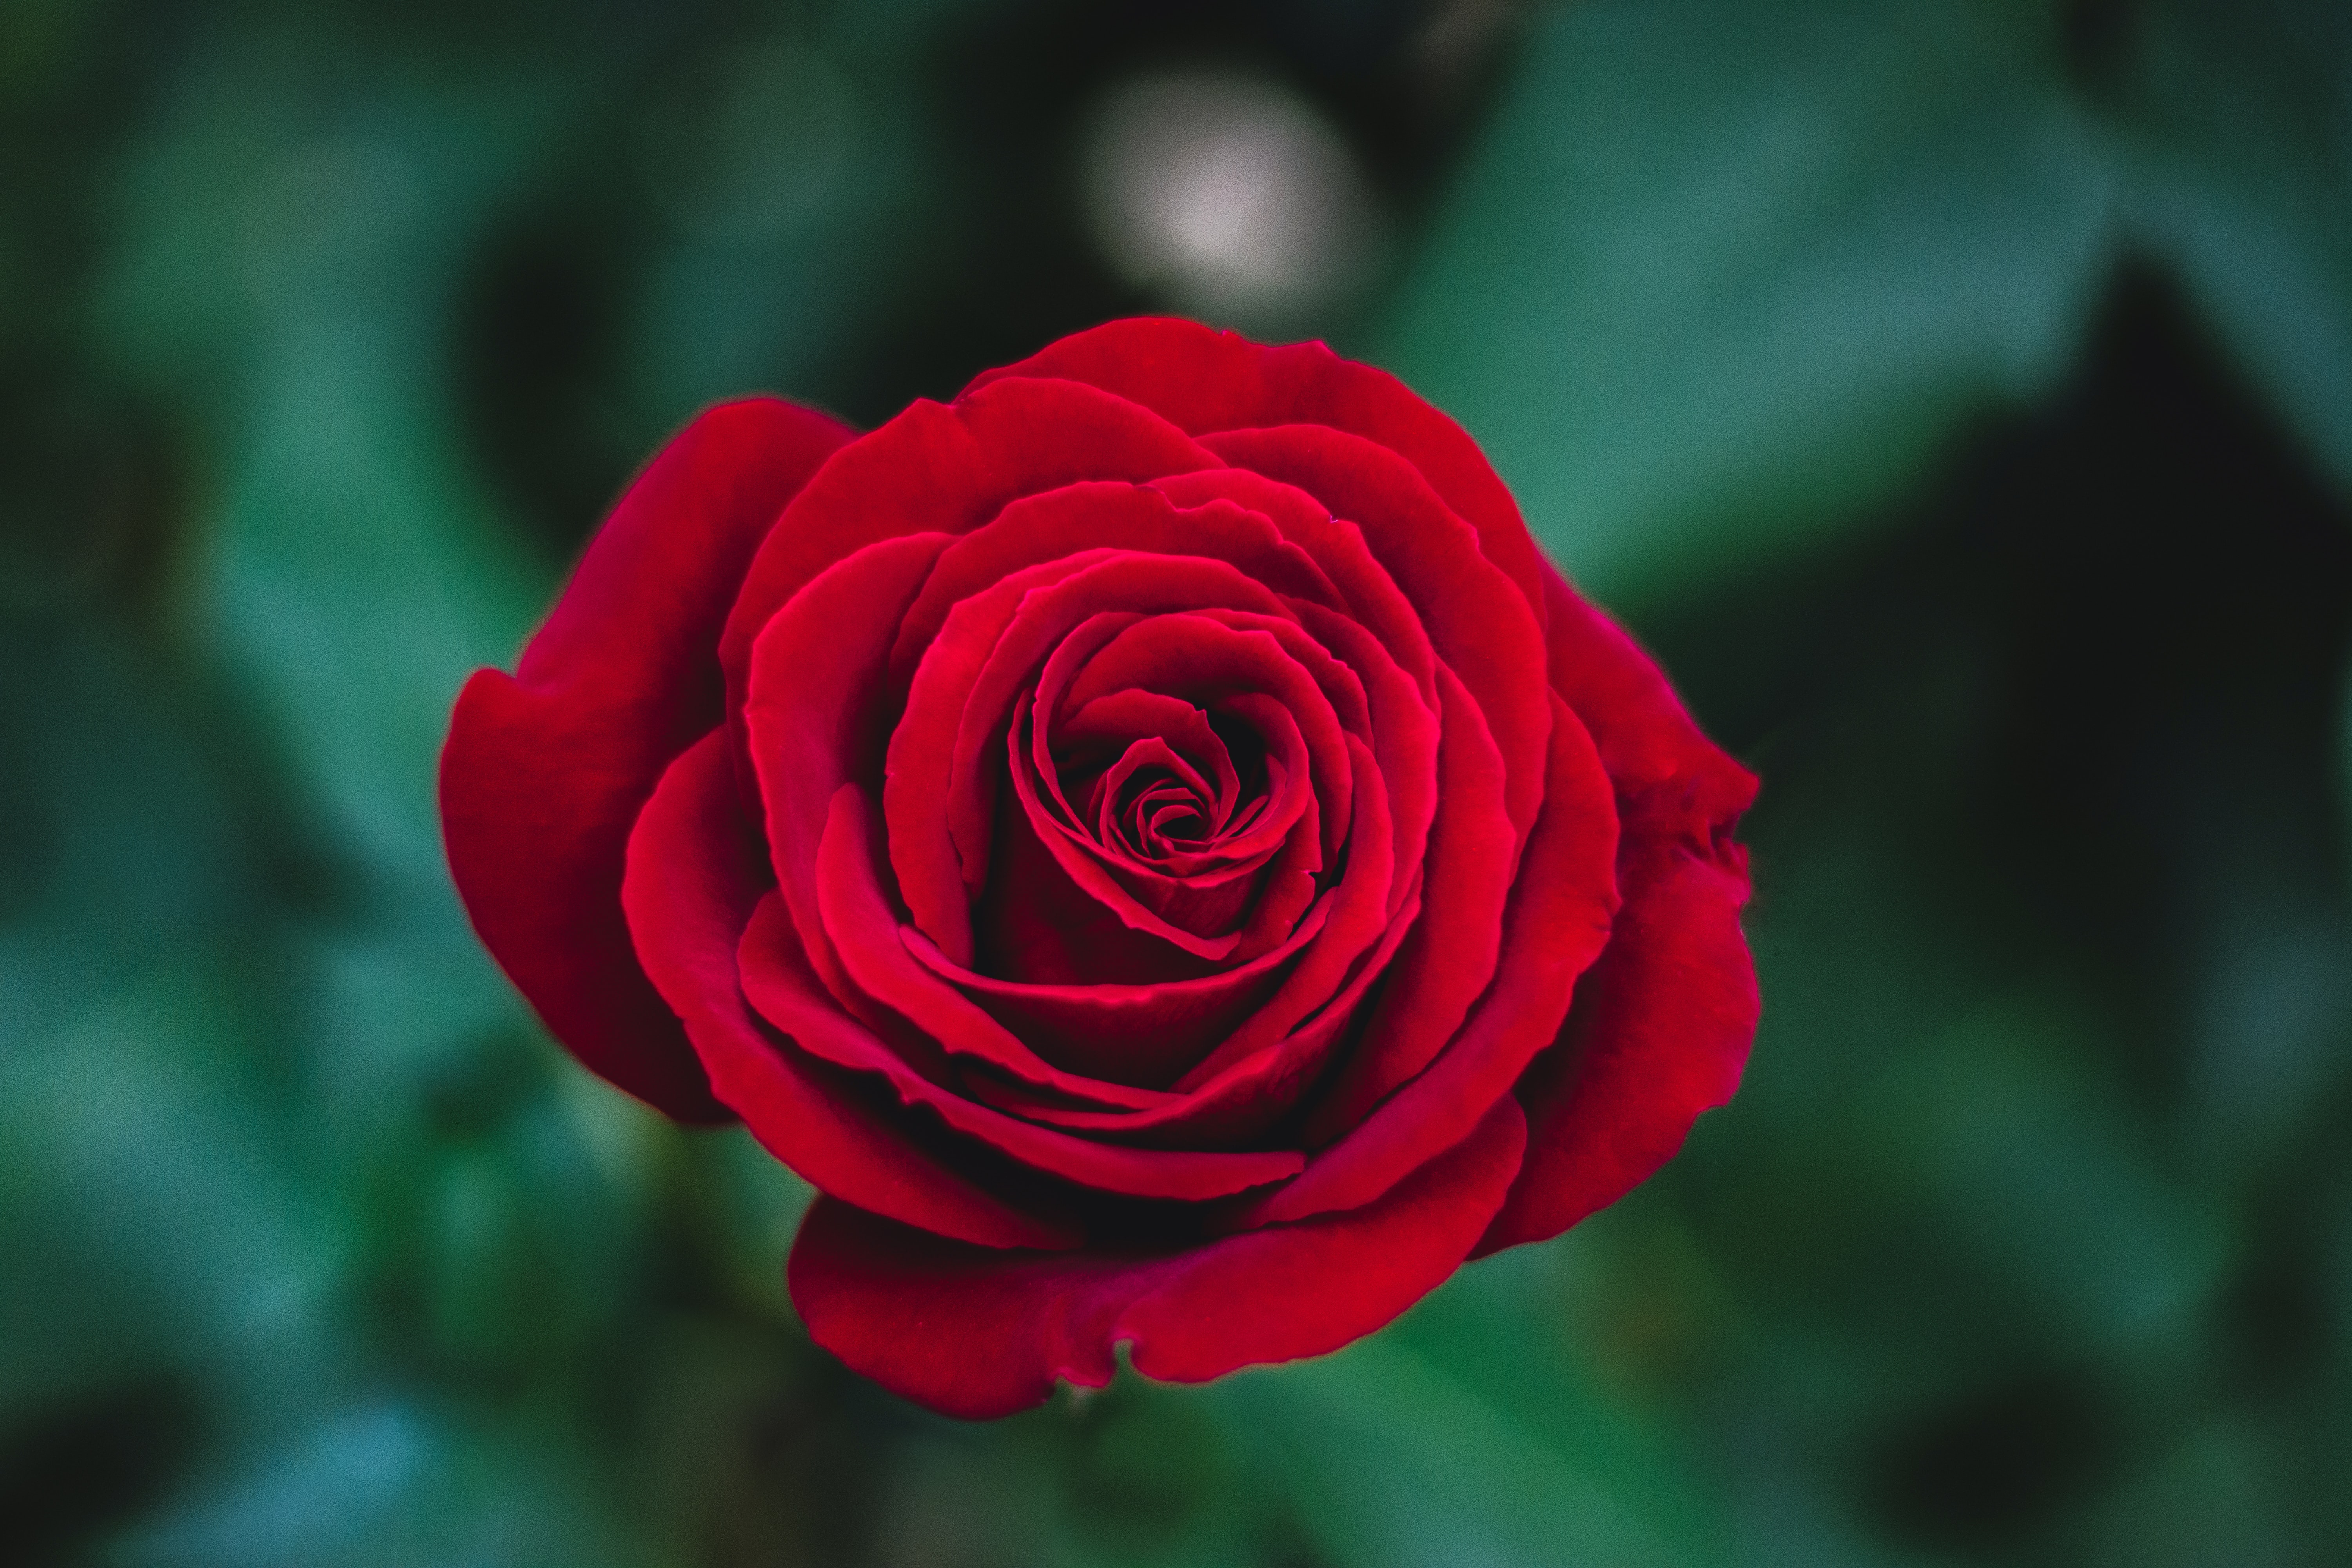 Close-up of a deep red rose